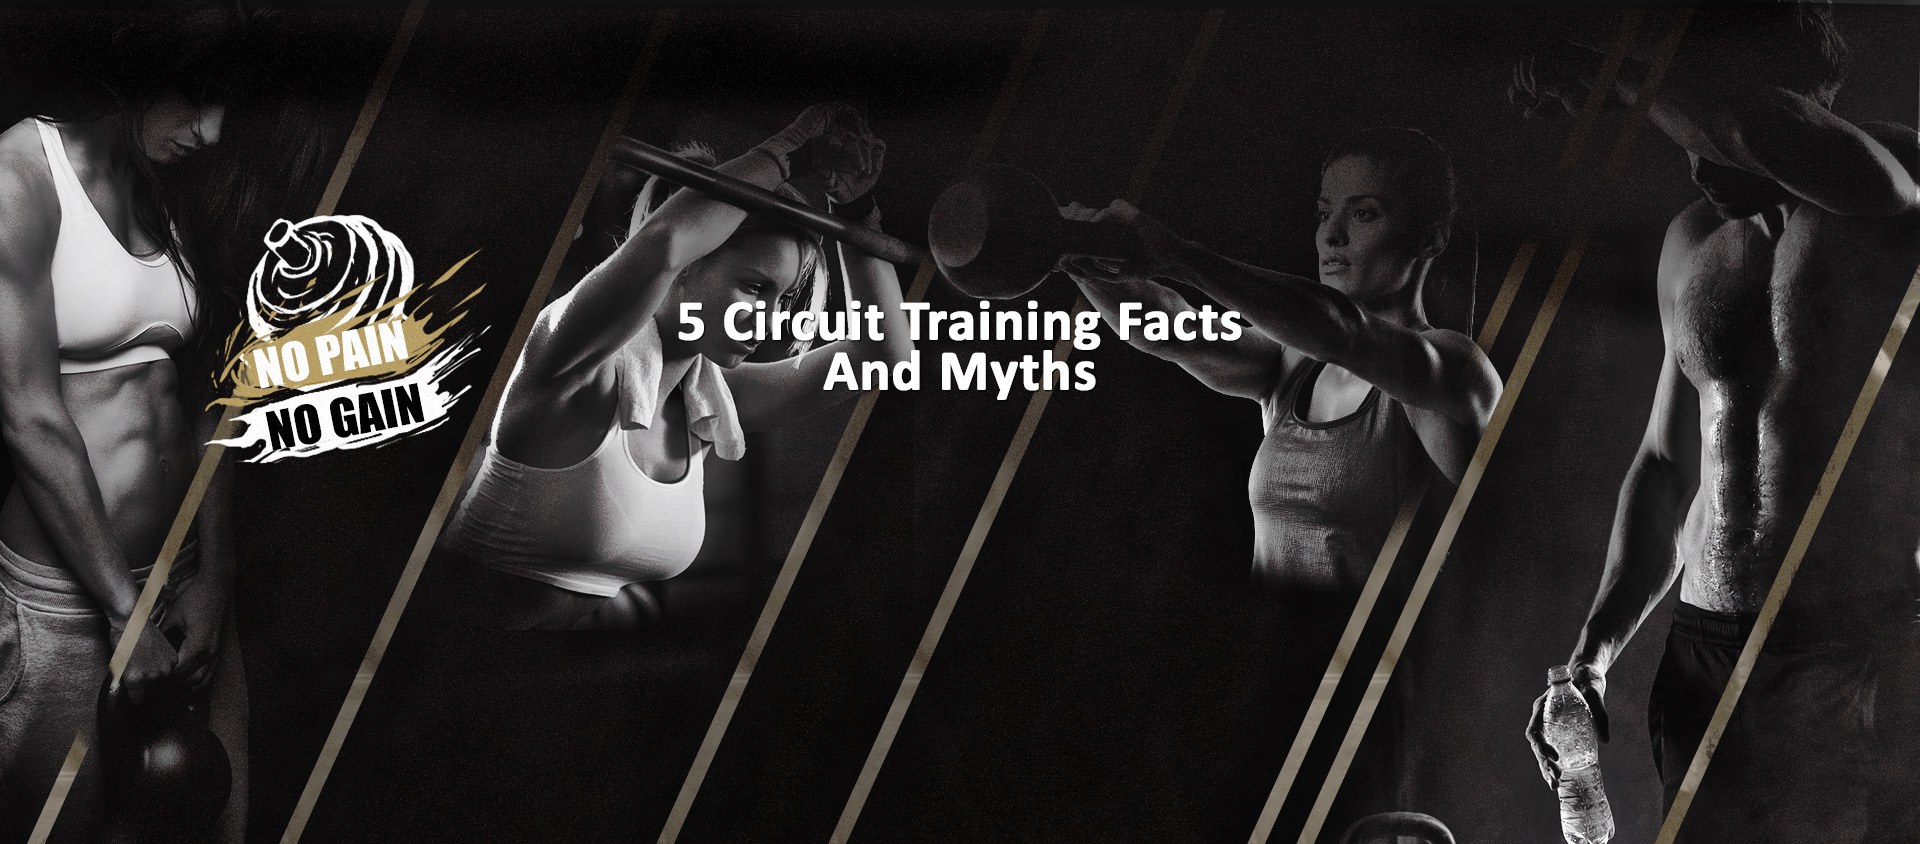 5 circuit training facts and myths